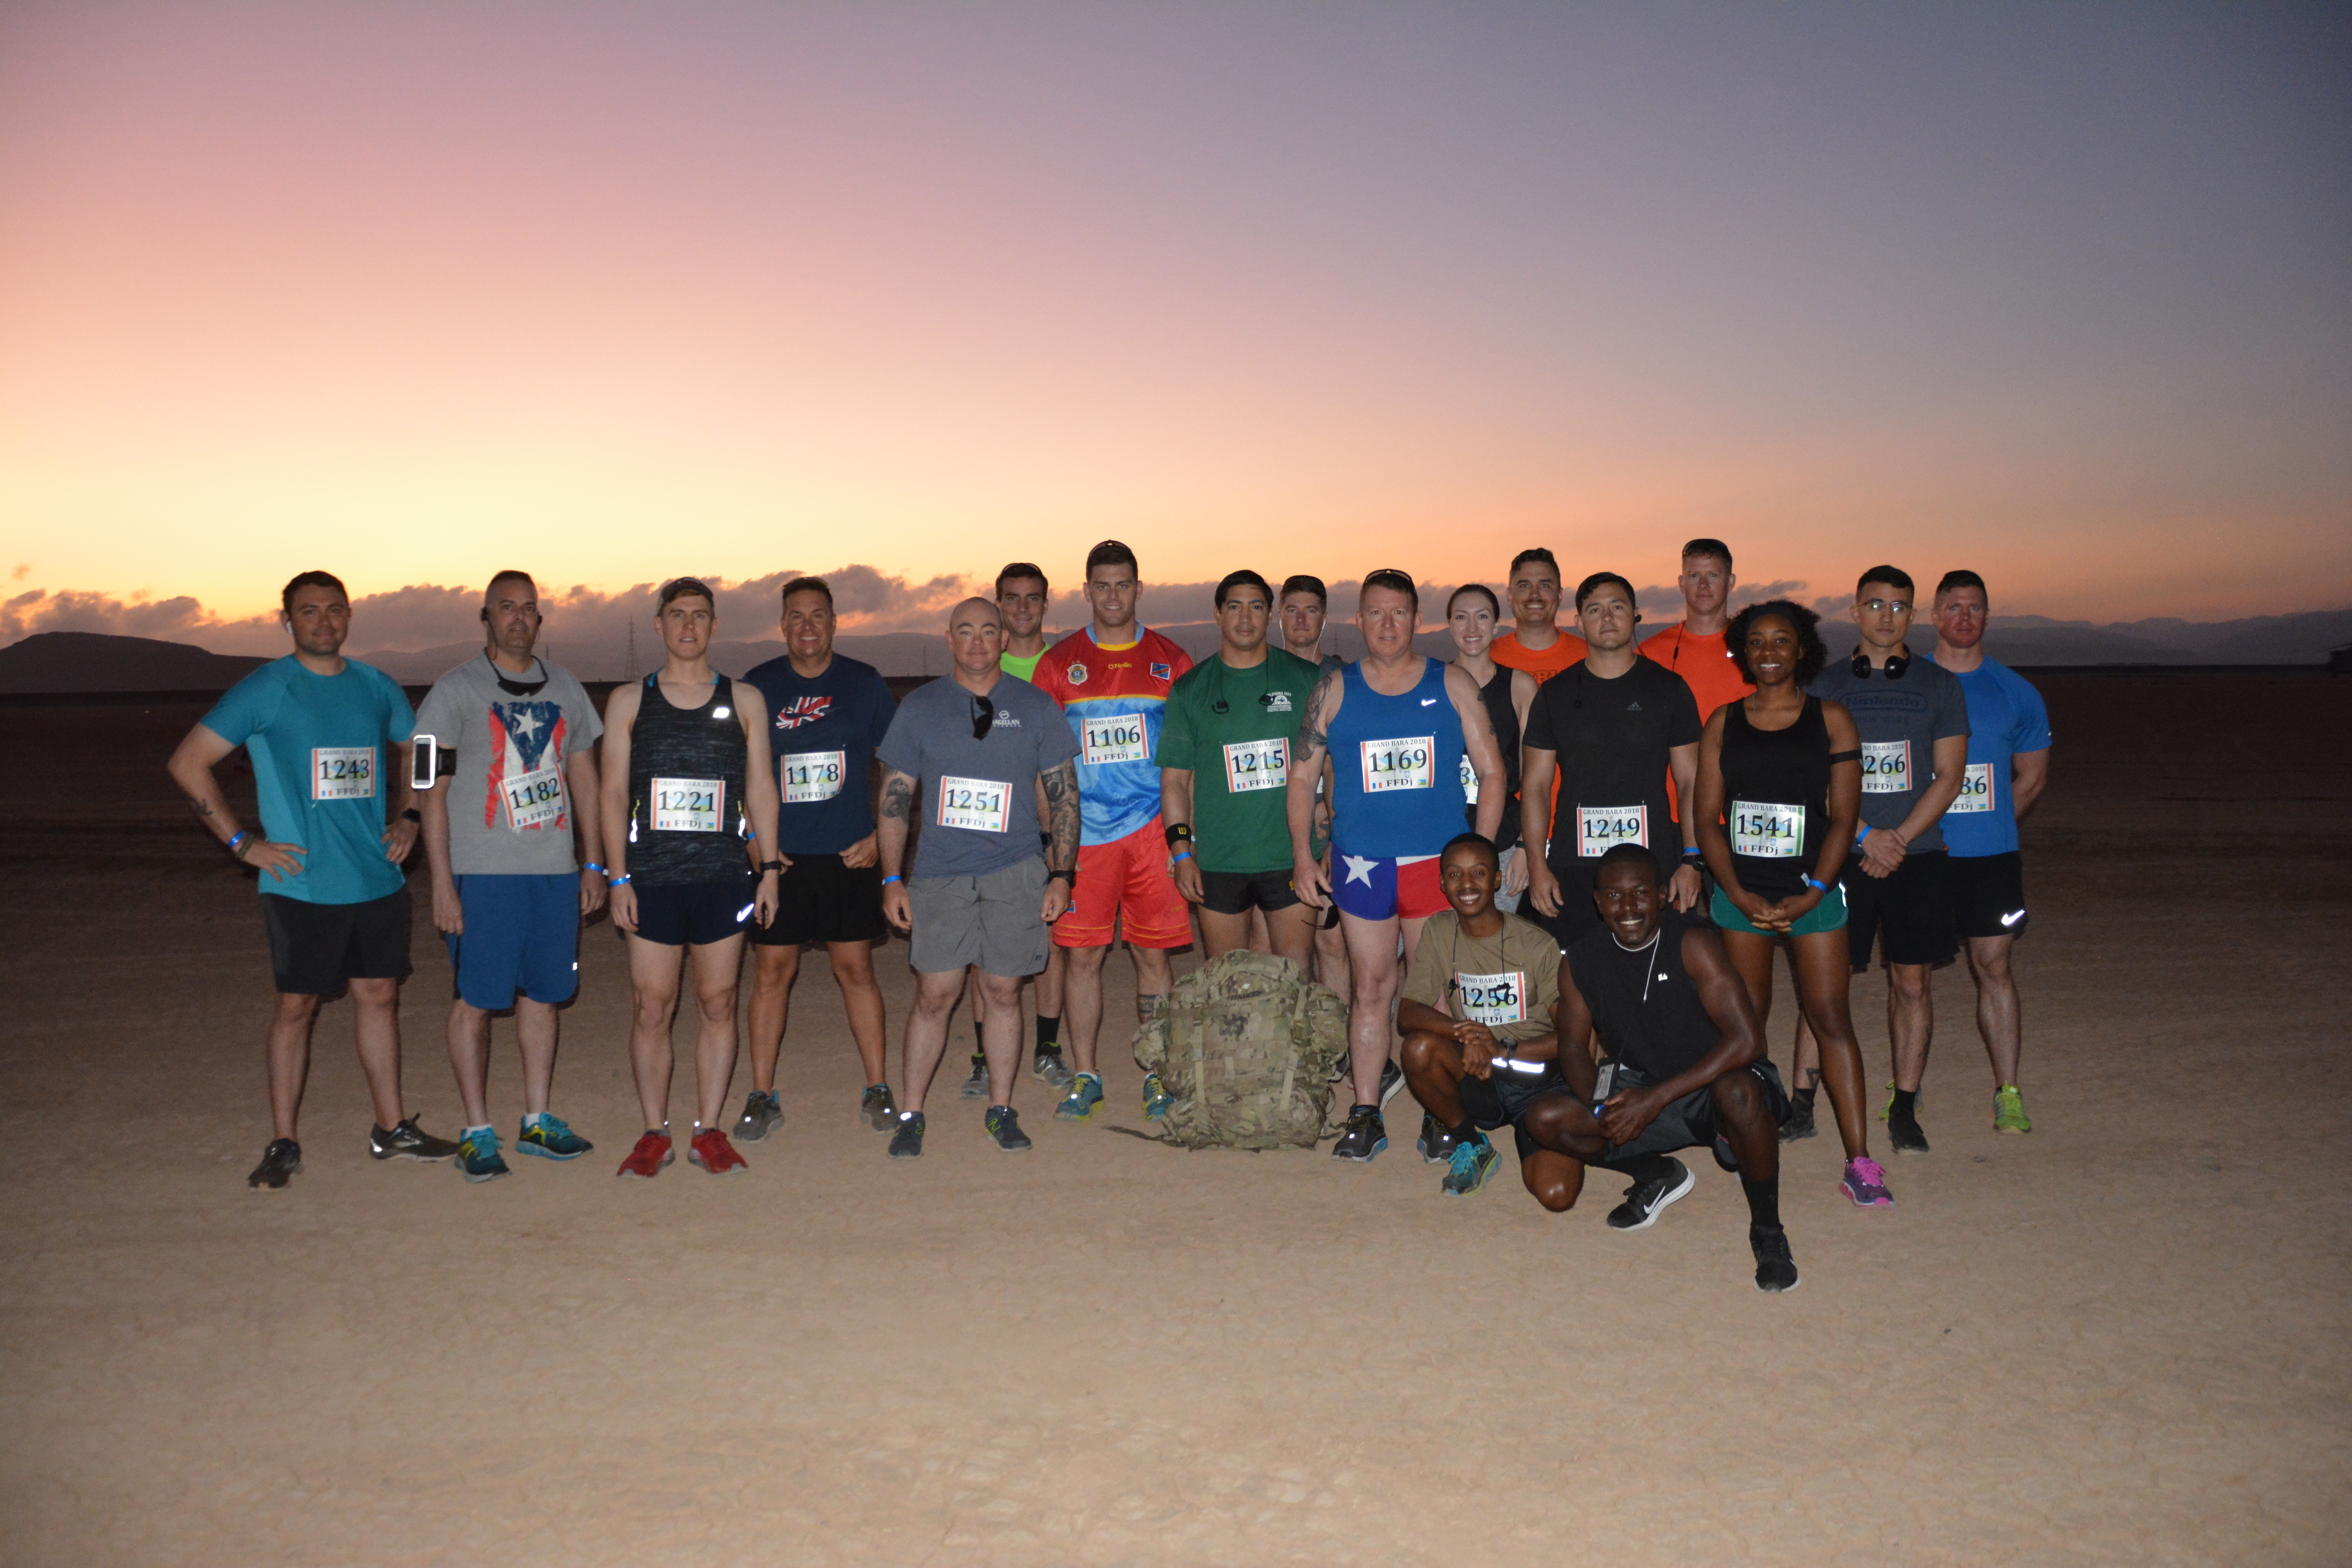 Task Force Alamo, a U.S. Army Reserve unit from Texas, gathered before the race. Nearly 200 members of Combined Joint Task Force – Horn of Africa ran alongside 2,500 Djiboutian, Chinese, and coalition service members and civilians during the 15k (9.3 mile) race across a stretch of Djibouti's Grand Bara Desert, Dec. 13. (U.S. Army photo by Capt. Olivia Cobiskey)